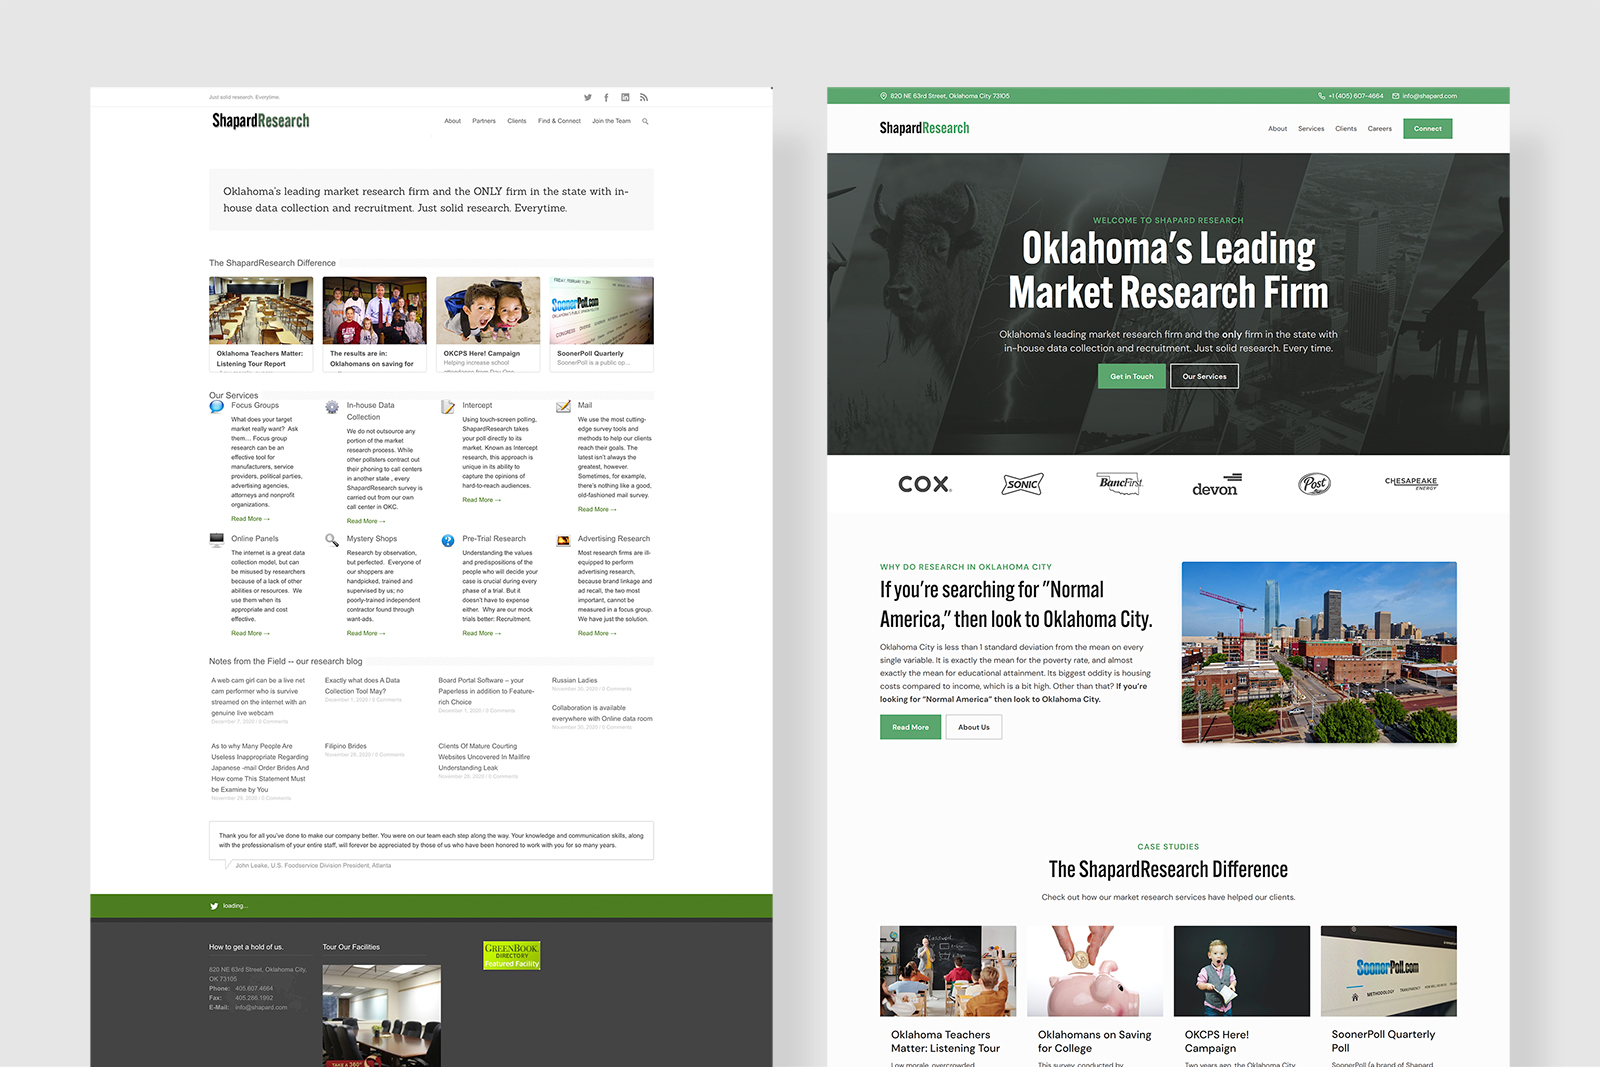 Shapard Research's old outdated website vs the new website built by Carbon Creative, an okc web design agency